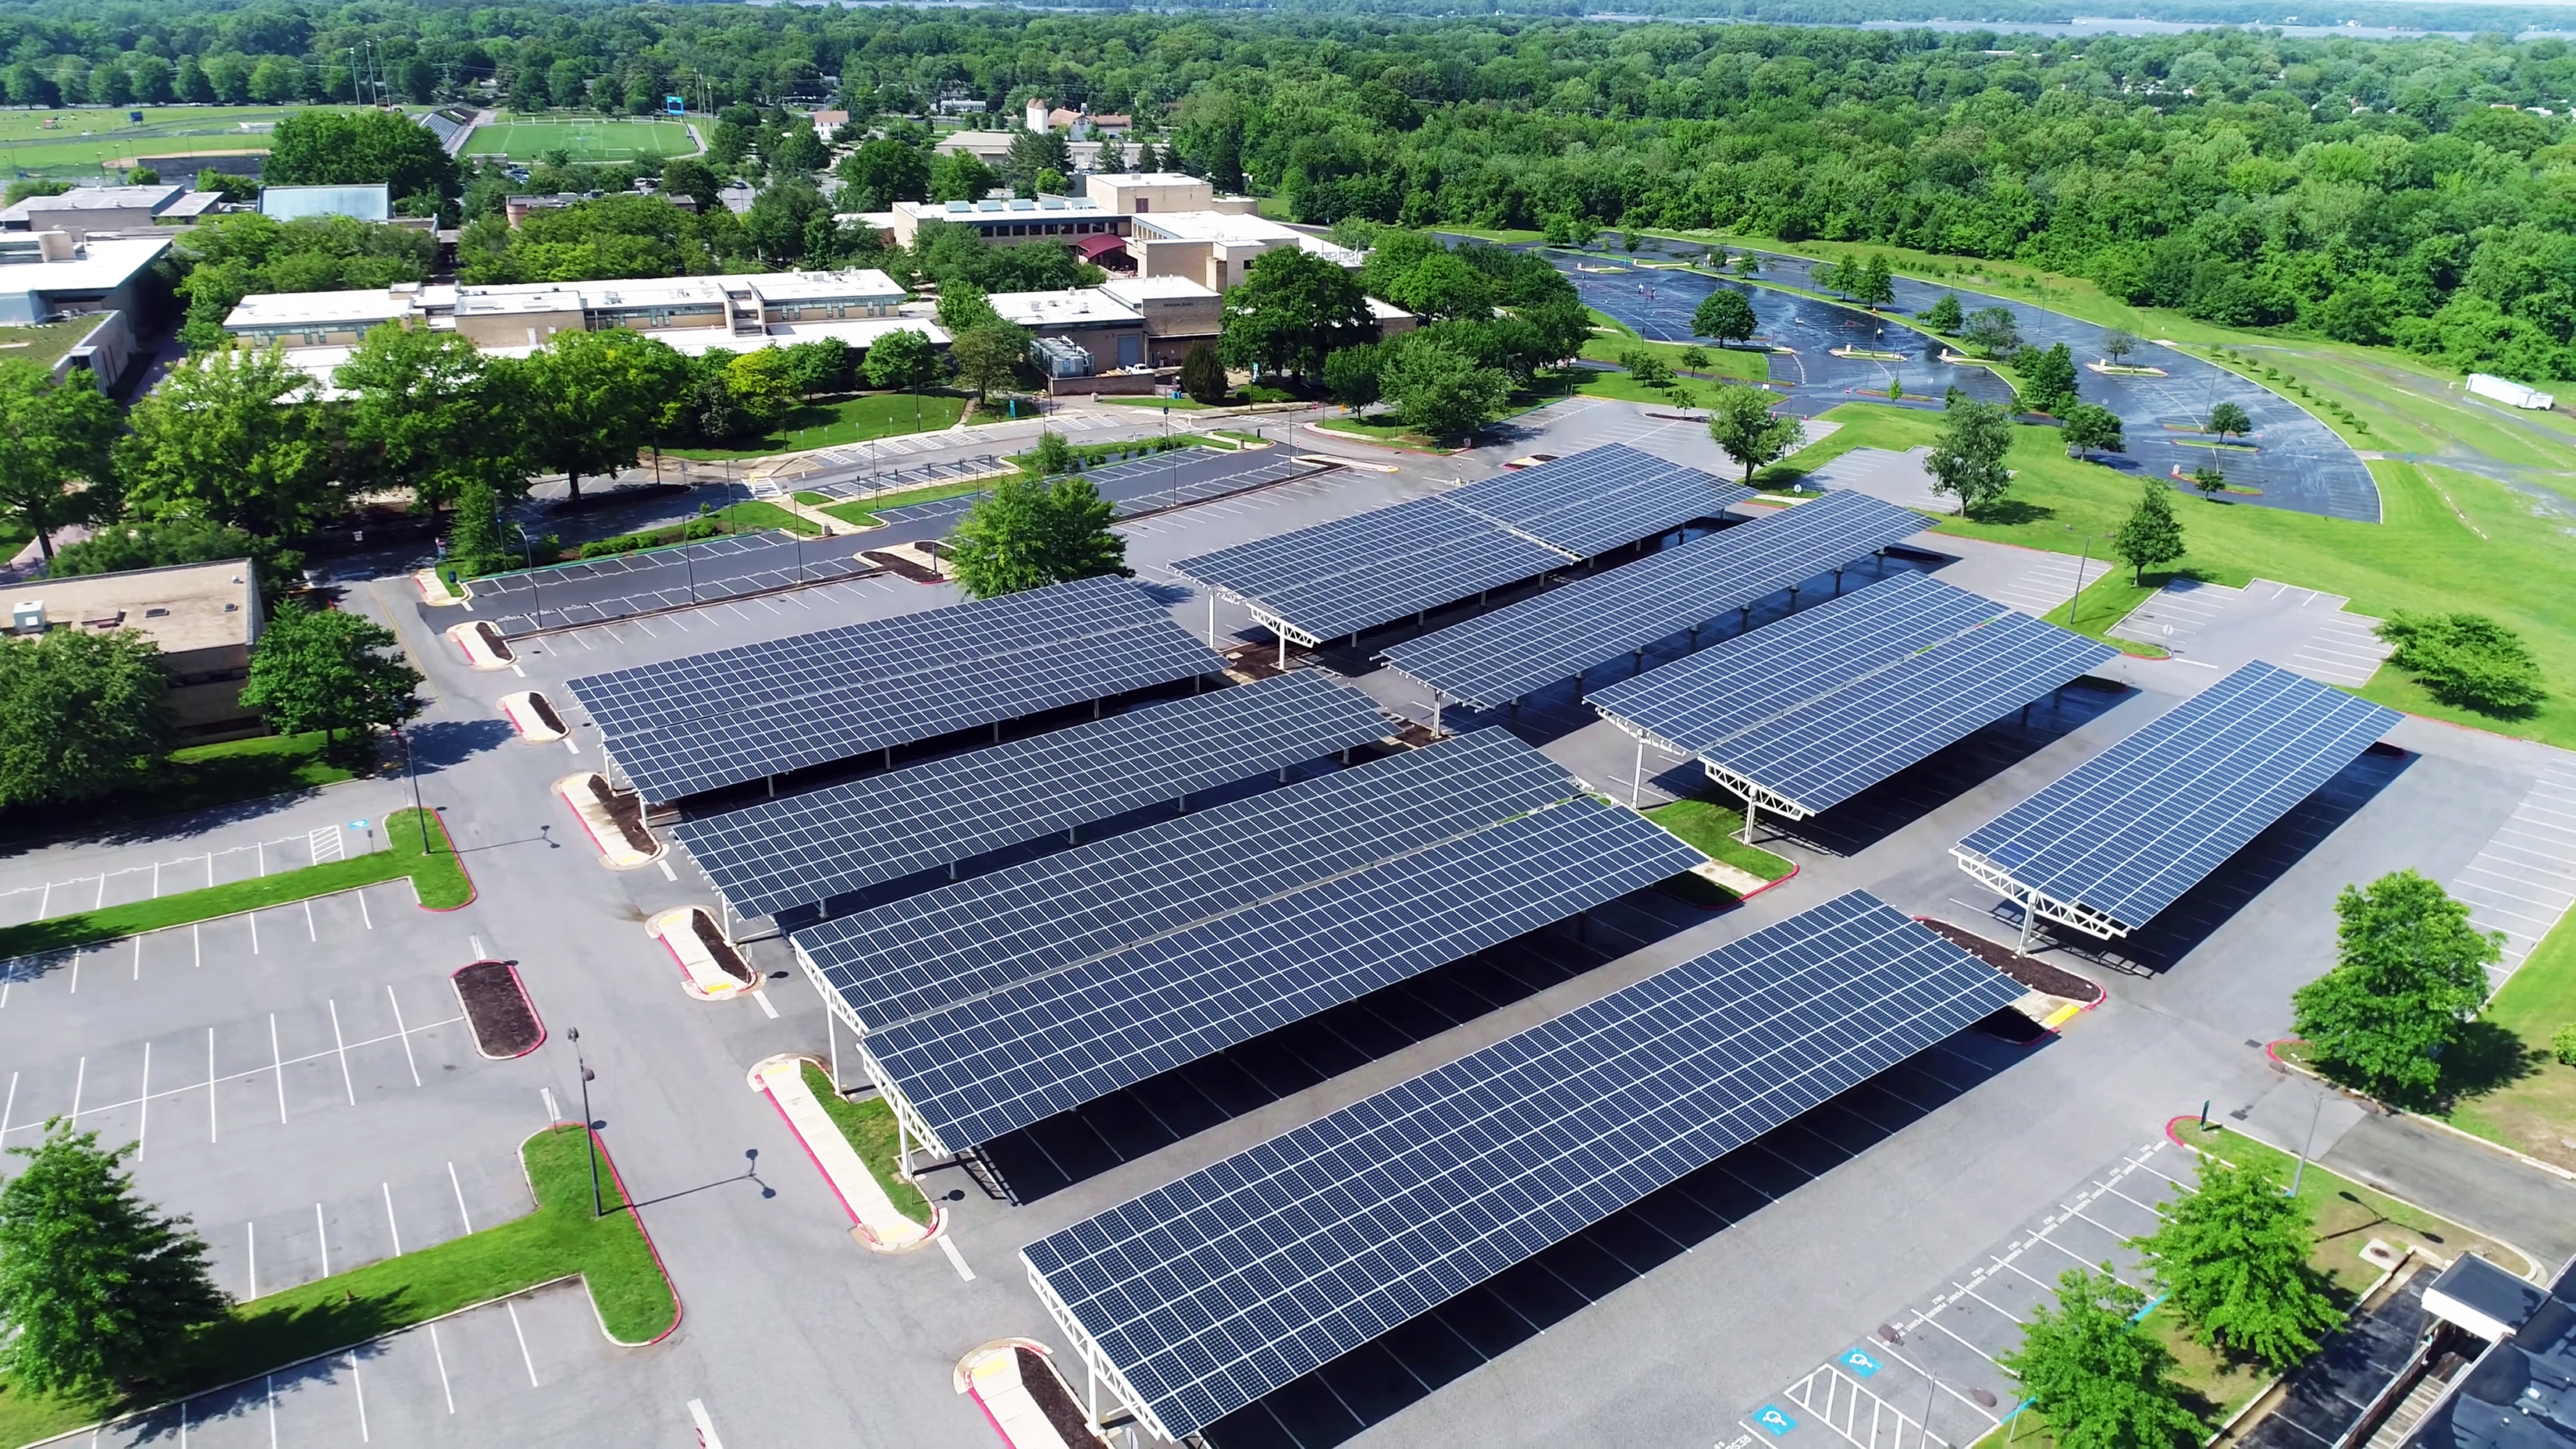 aerial view of solar panels installed in roof of parking